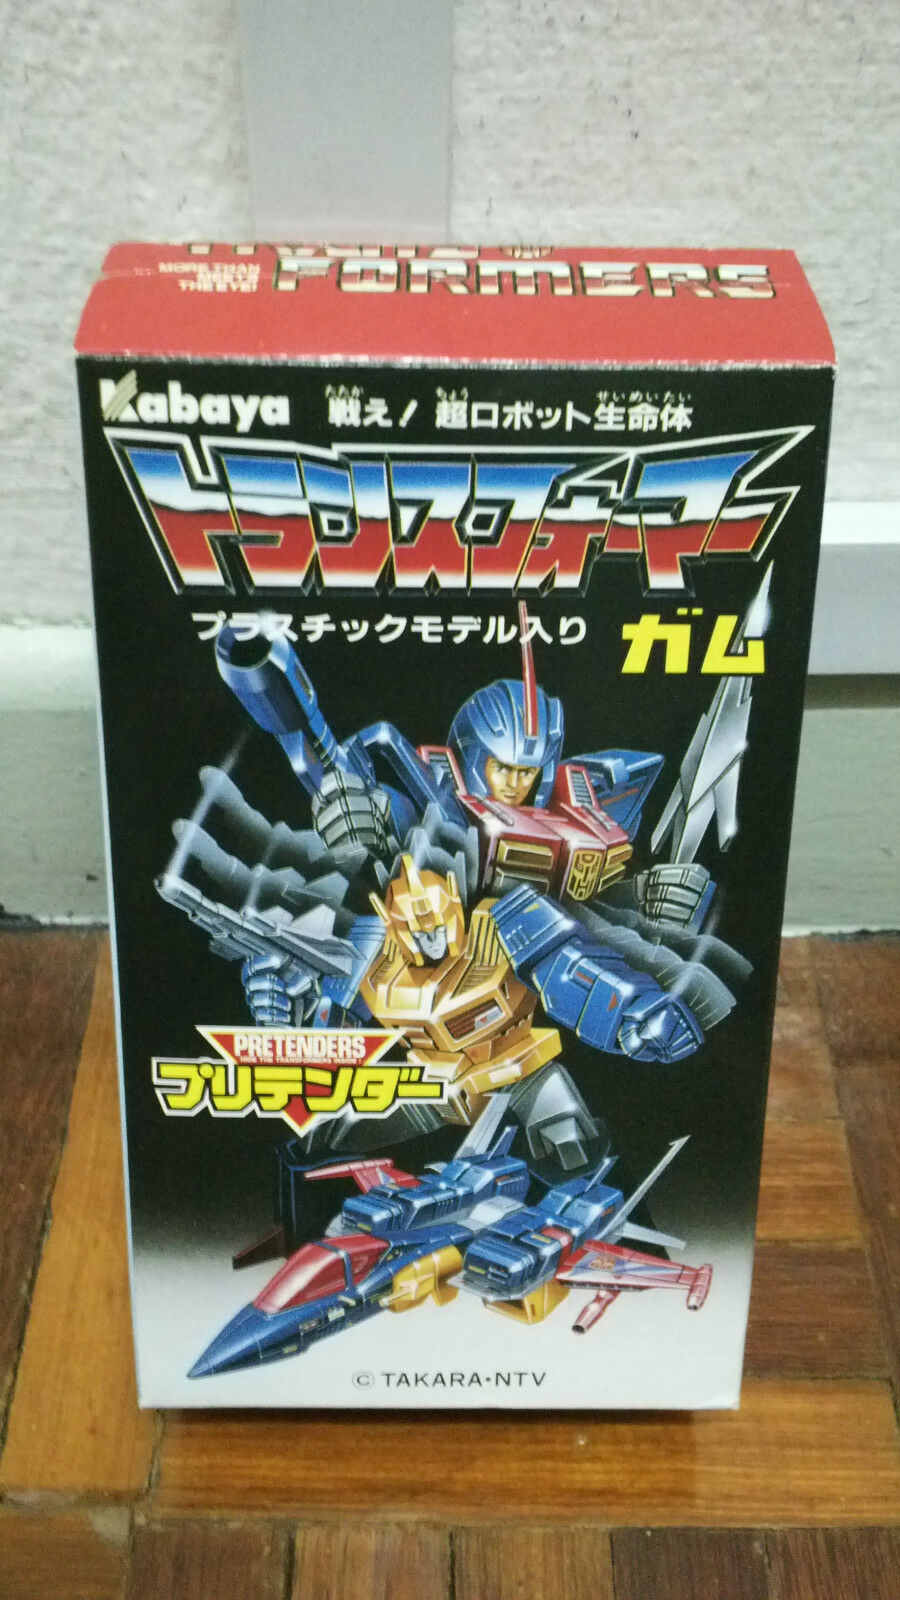 Transformers G1 Kabaya Authentic Metalhawk MIB UNUSED Sealed New AFA bluee Ready